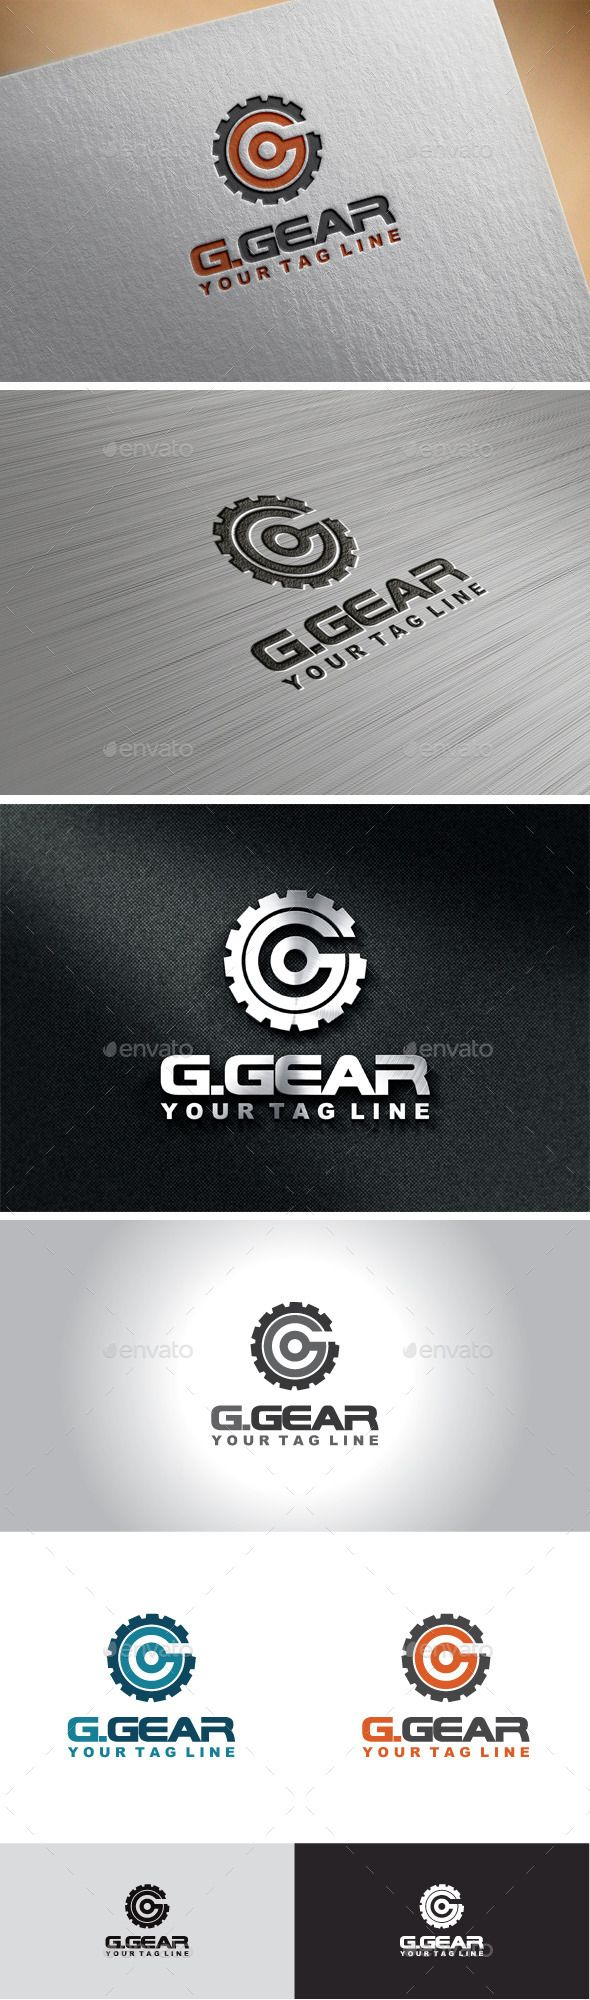 Gear Letter G - Logo Design Template Vector #logotype Download it here: http://graphicriver.net/item/gear-letter-g-logo/10111136?s_rank=1581?ref=nesto